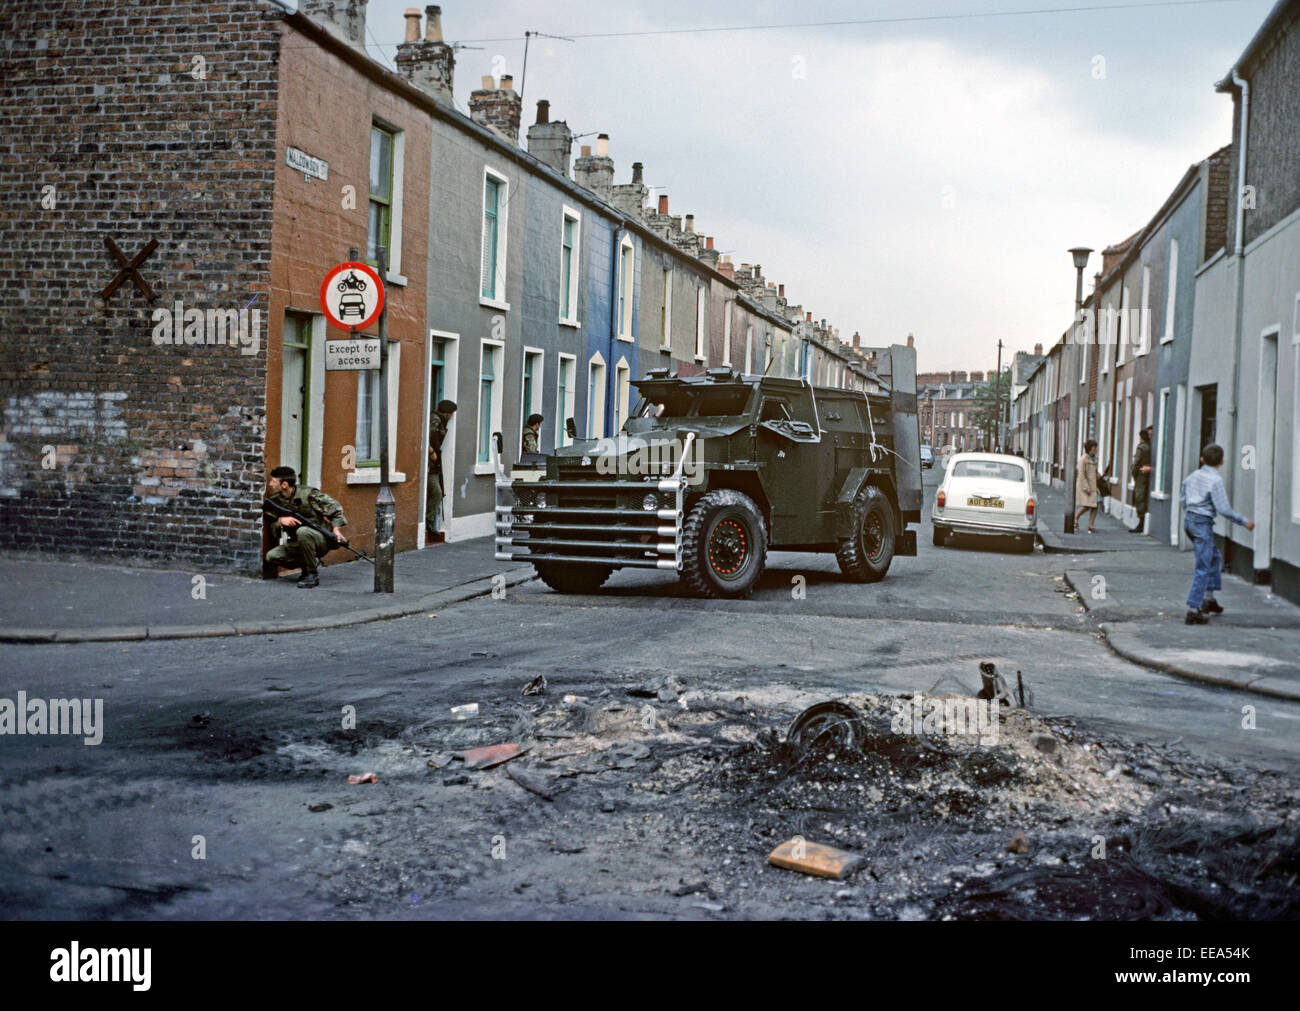 http://c7.alamy.com/comp/EEA54K/belfast-northern-ireland-august-1976-british-army-troops-and-armoured-EEA54K.jpg